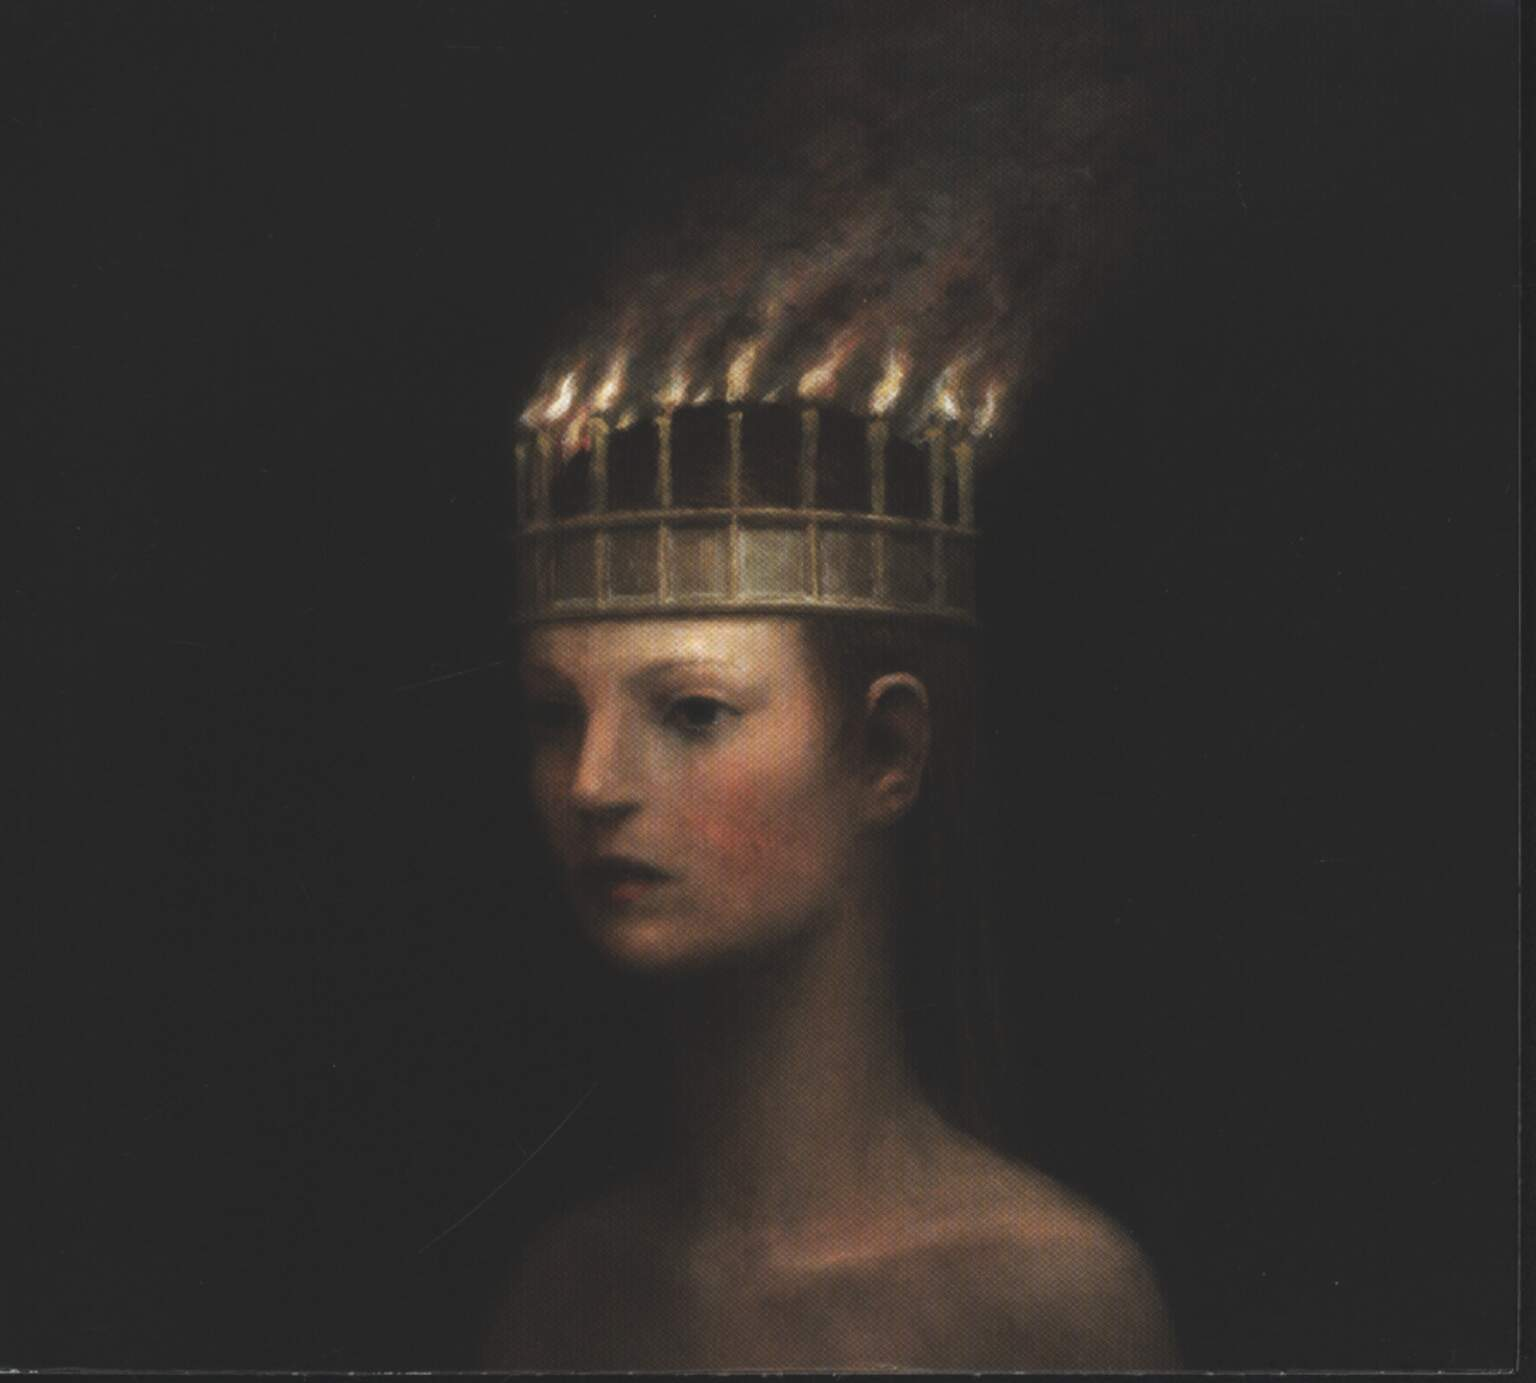 Mantar: Death By Burning, 1×CD